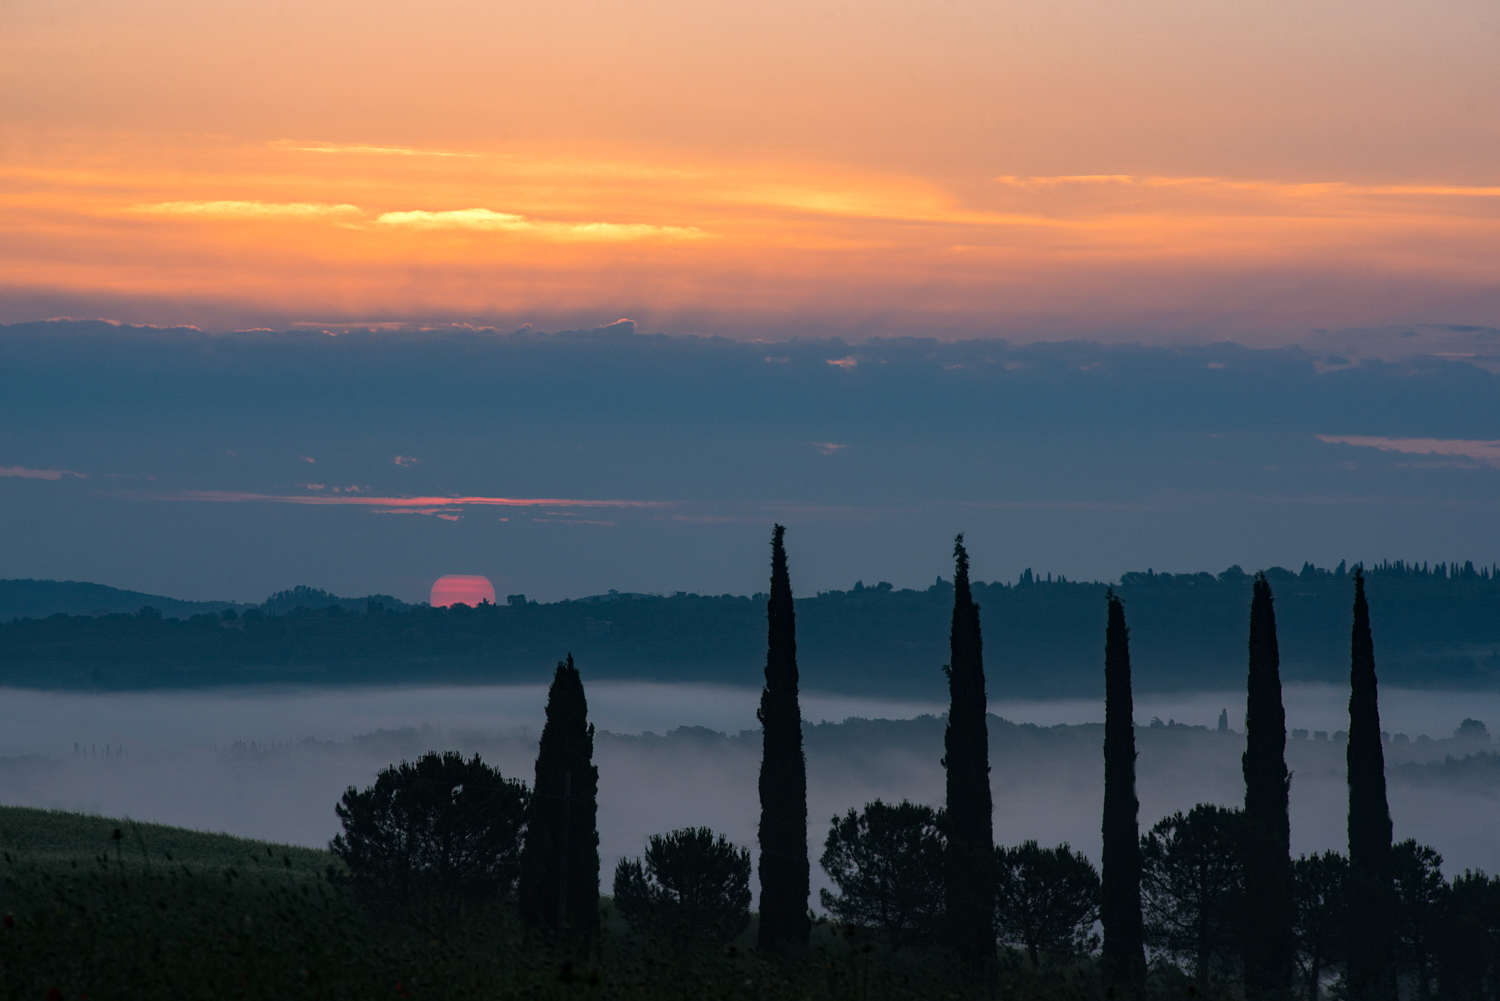 Copia di Sunrise at Podere Belvedere valley.jpg